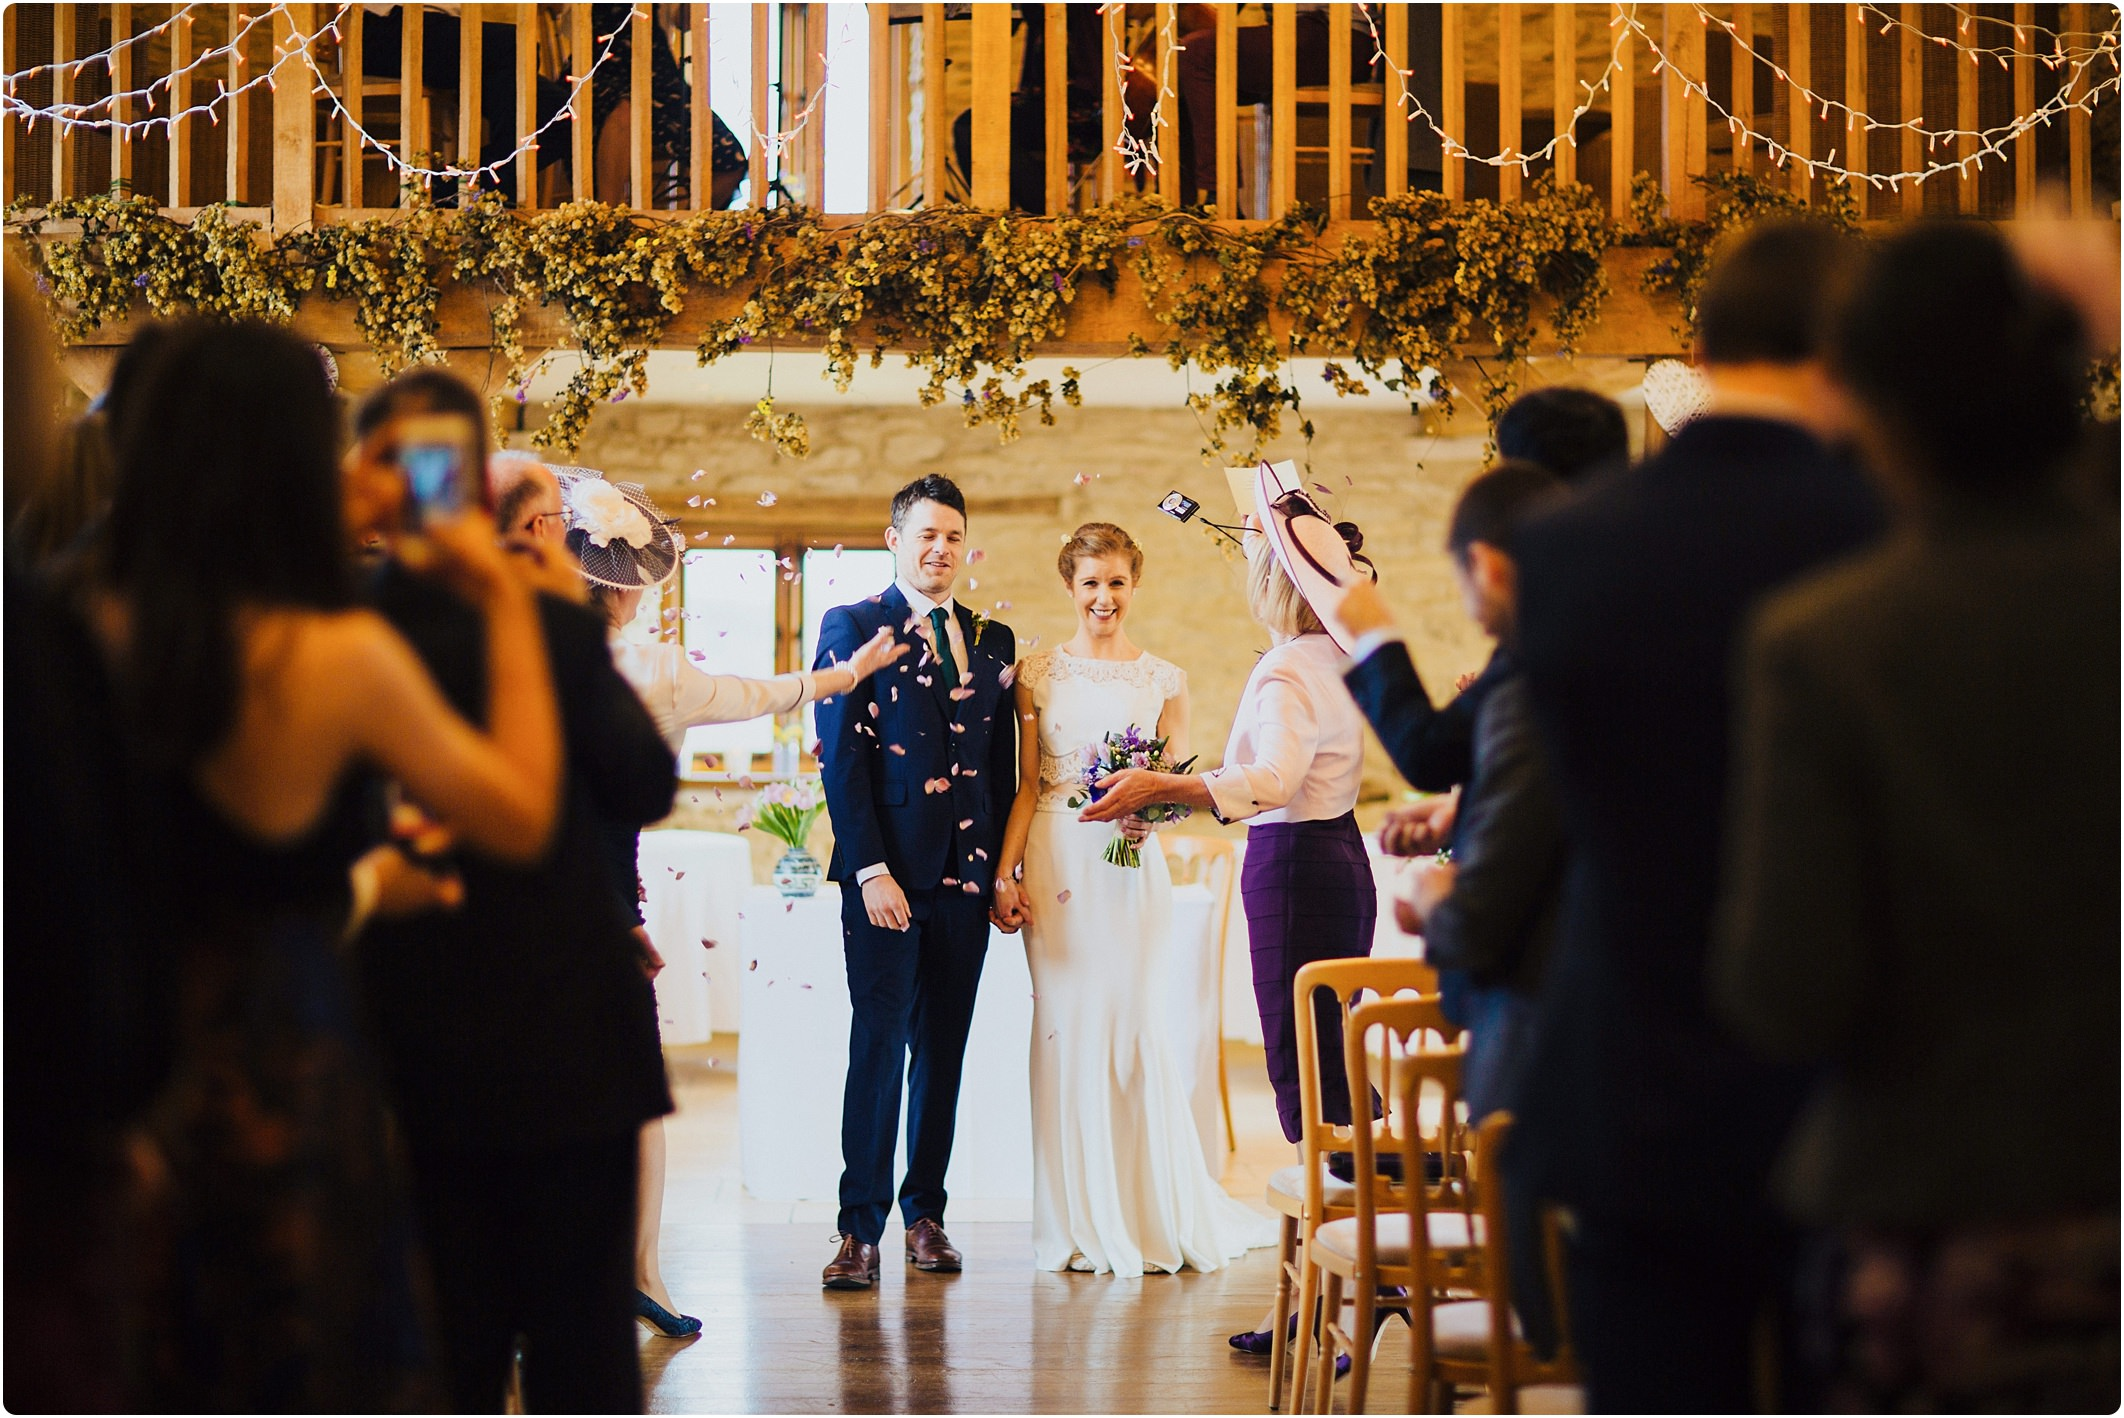 kingscote barn confetti shot